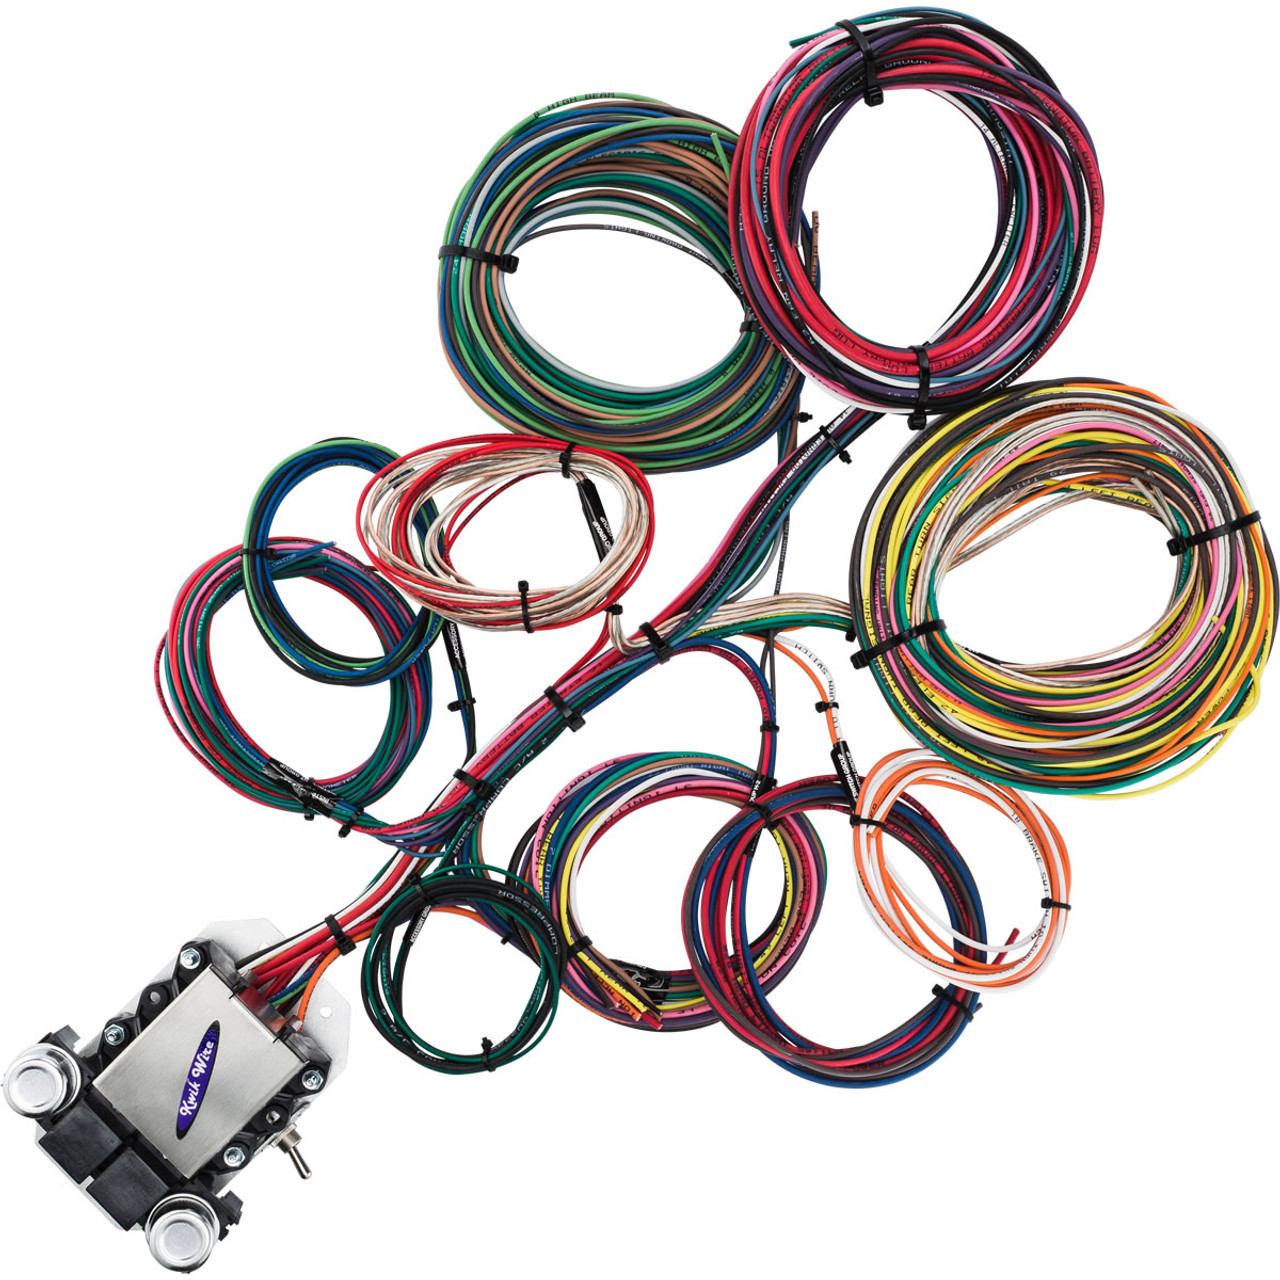 hight resolution of 14 circuit ford wire harness kwikwire com electrify your ride ford wiring harness kits e40d ford wiring harness